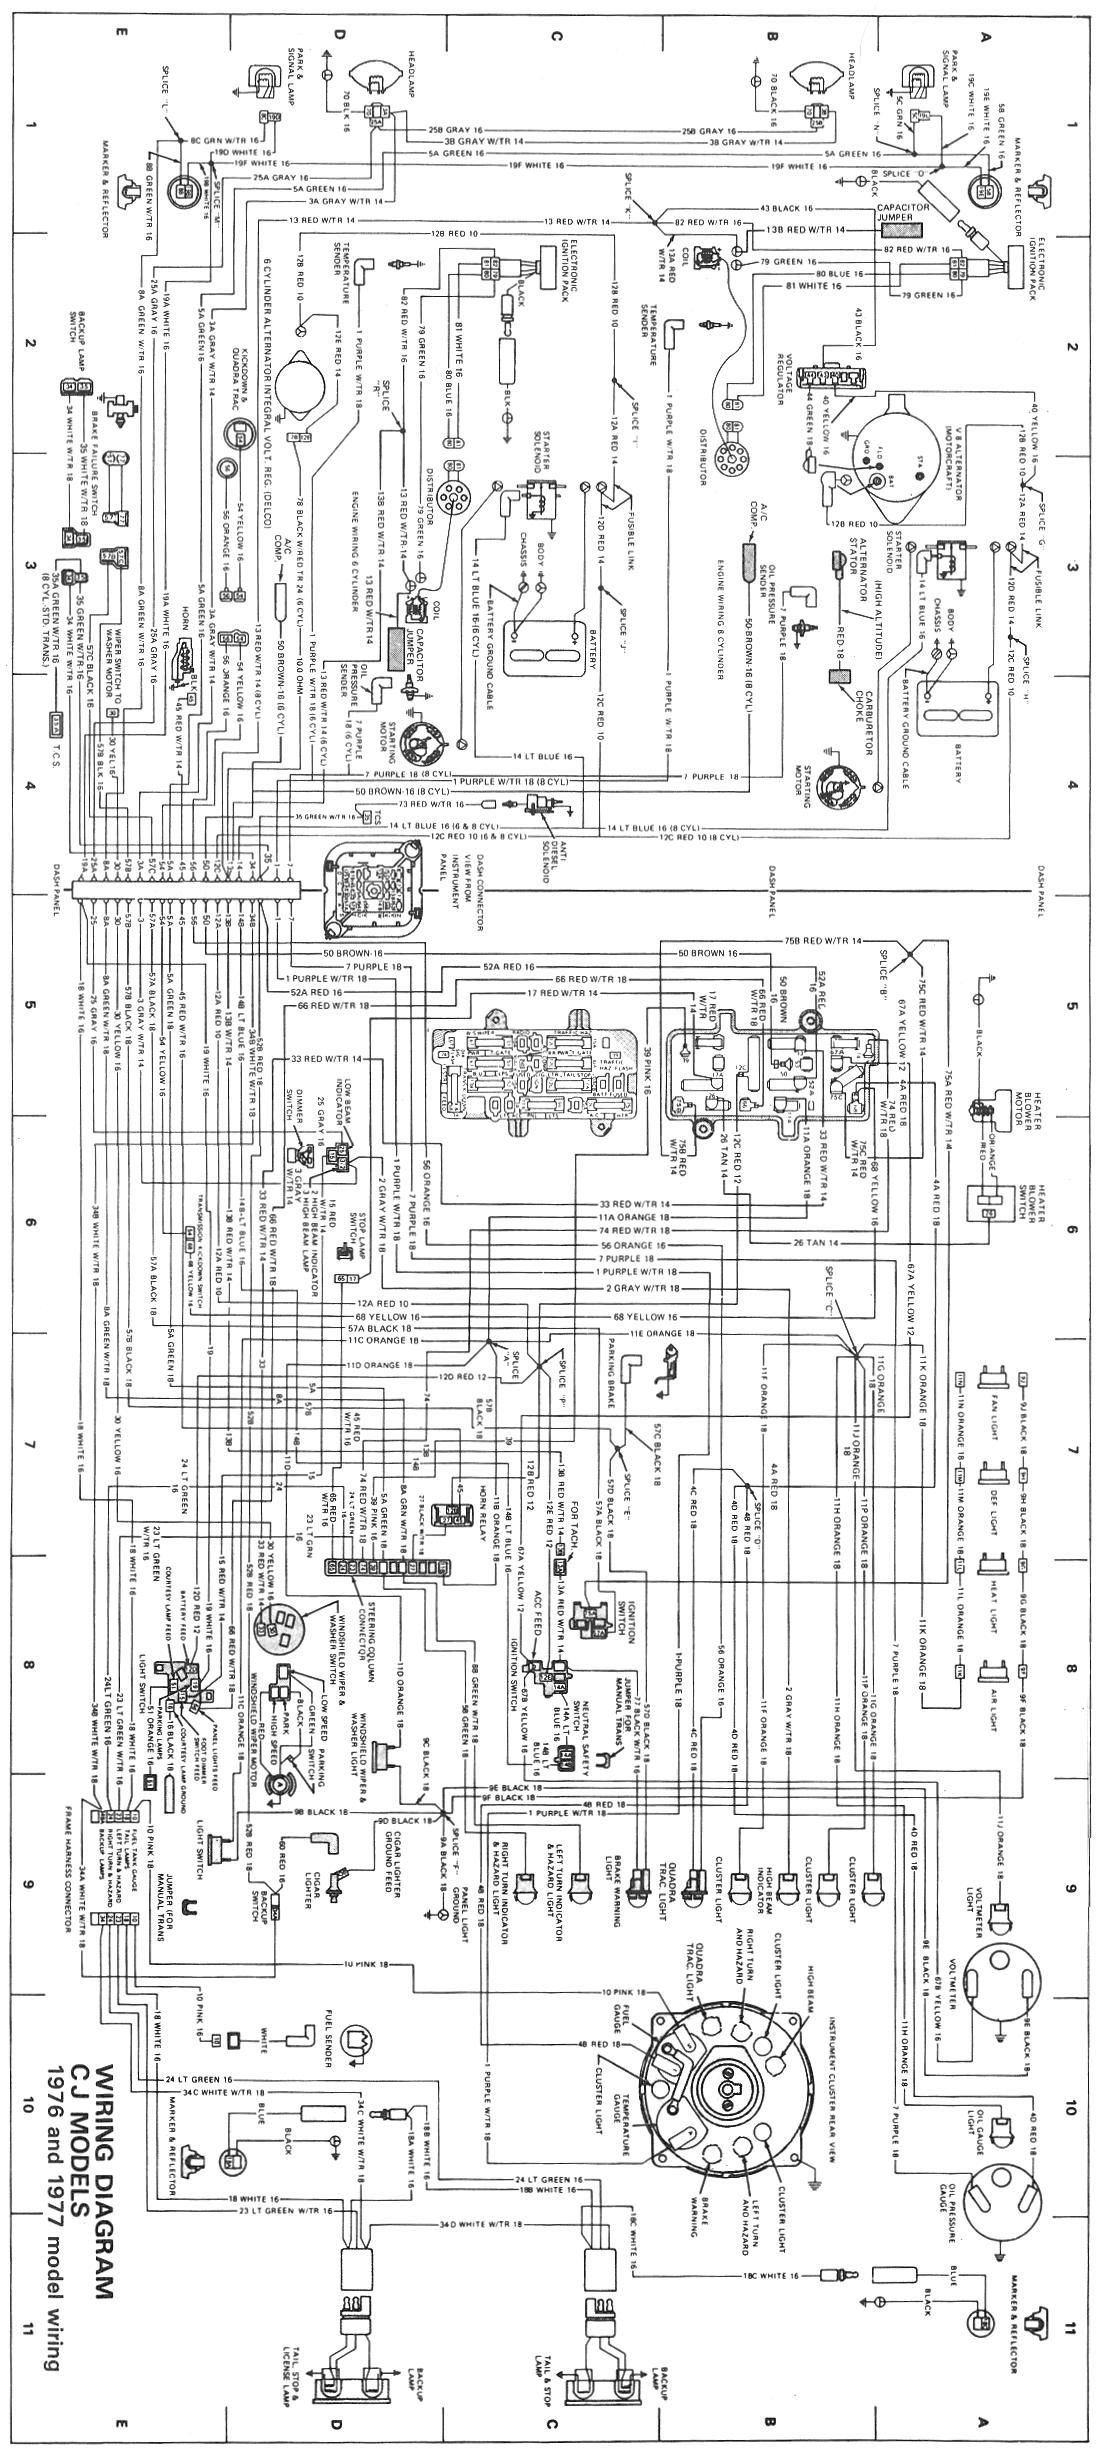 1985 cj7 fuse diagram electrical wiring diagram house u2022 rh  universalservices co Jeep Cherokee Fuse Panel Diagram 2000 Jeep Cherokee  Fuse Diagram